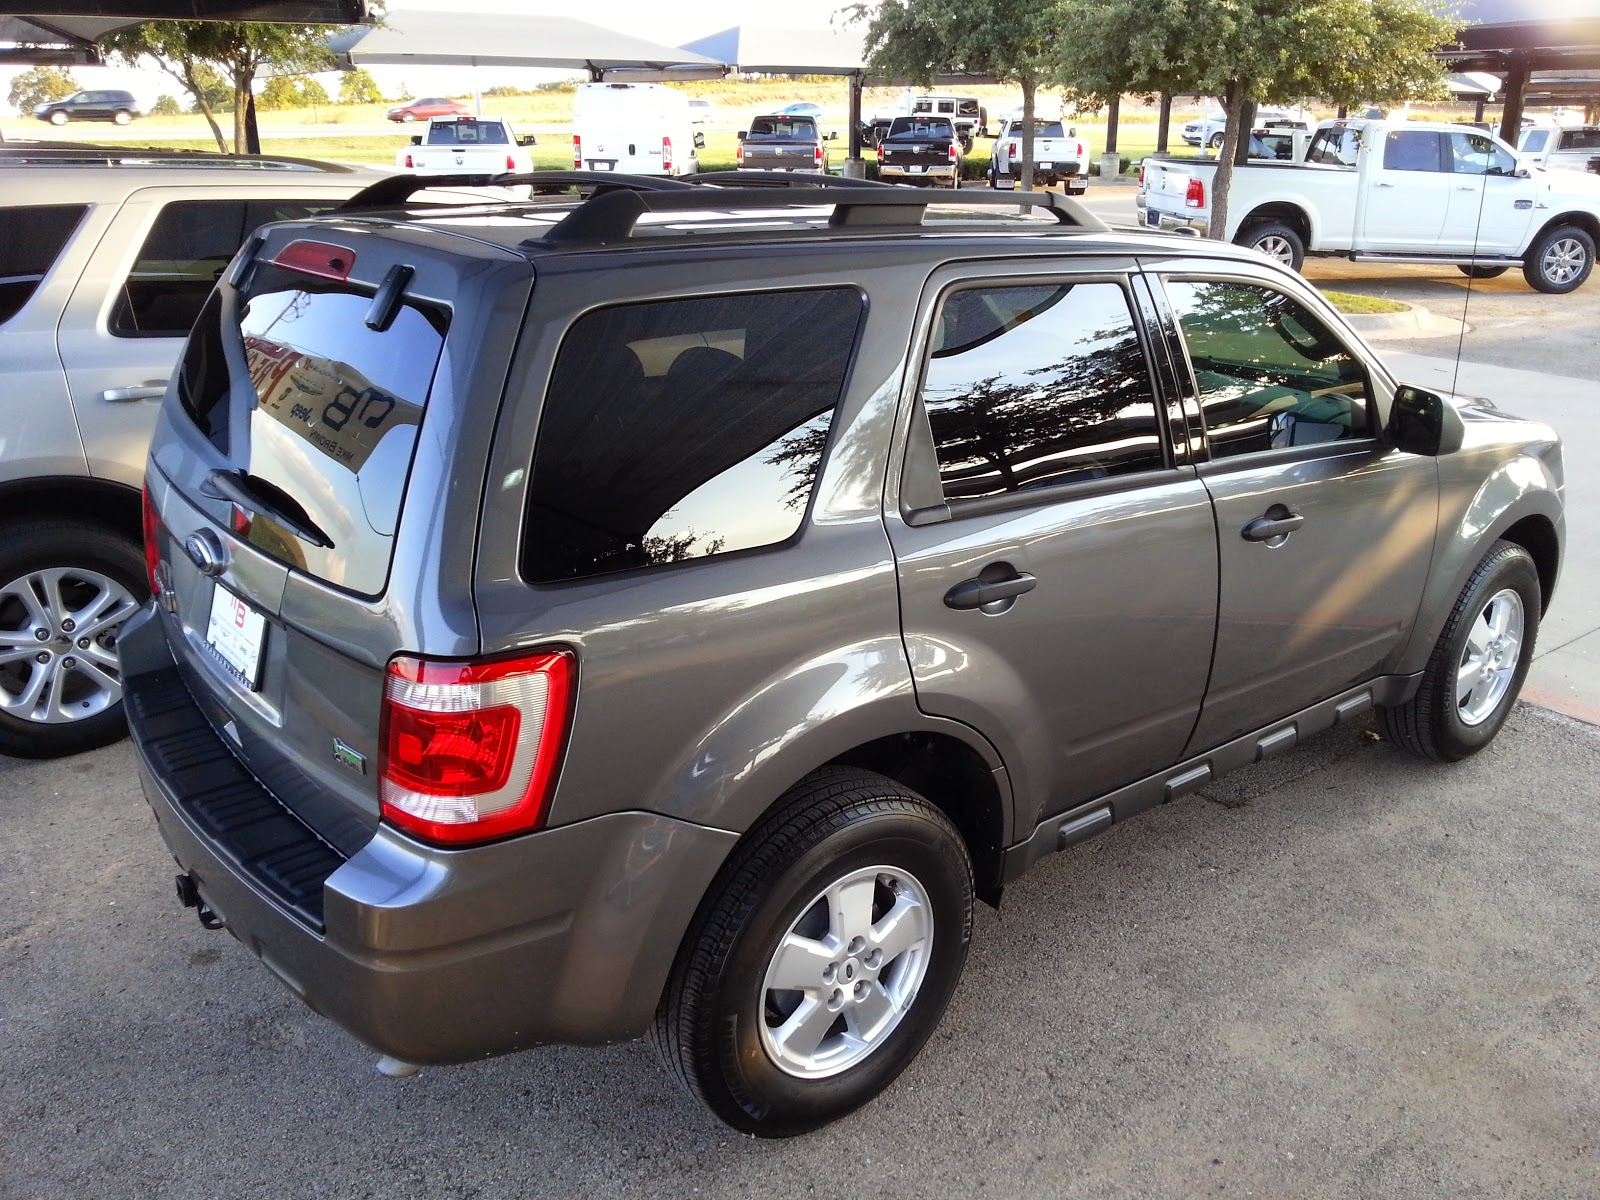 for sale 18 991 gray 2012 ford escape xlt leather sunroof call troy young 817 243 9840 tdy. Black Bedroom Furniture Sets. Home Design Ideas